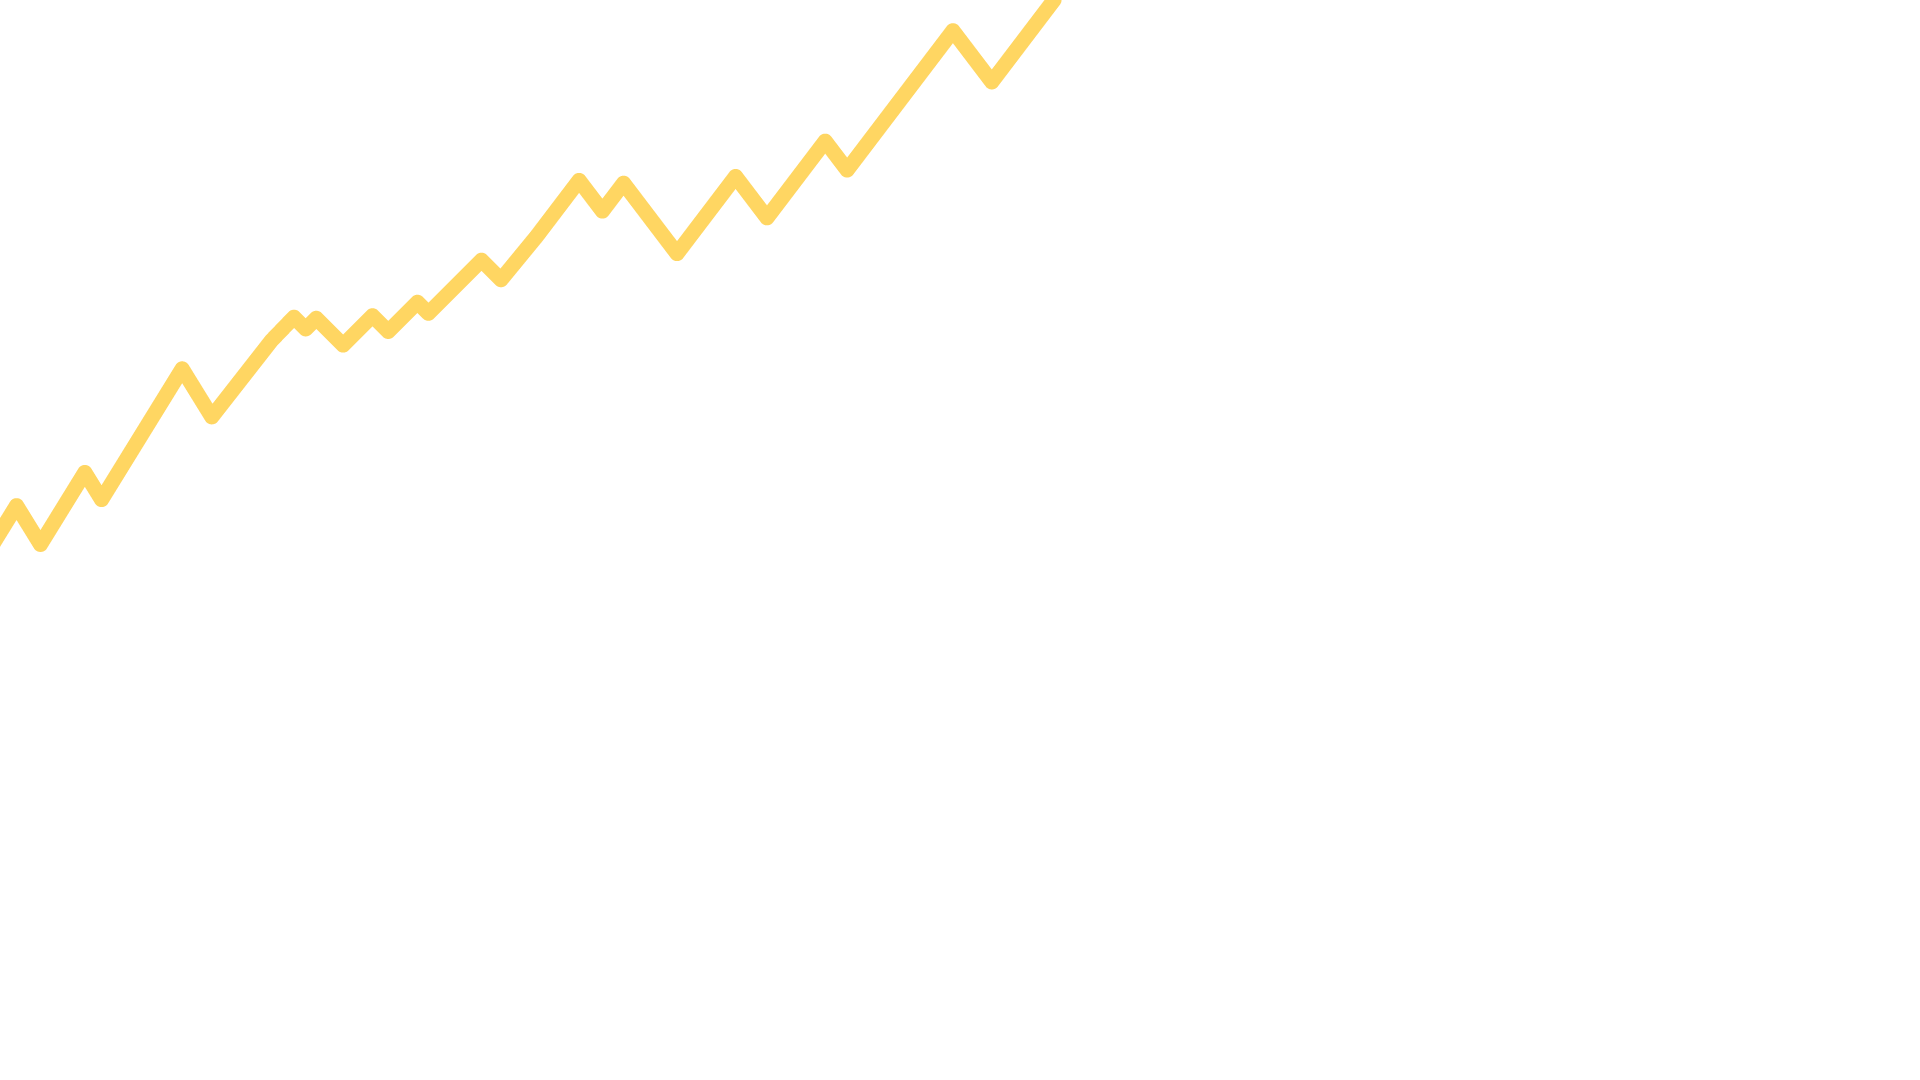 A yellow graph line.